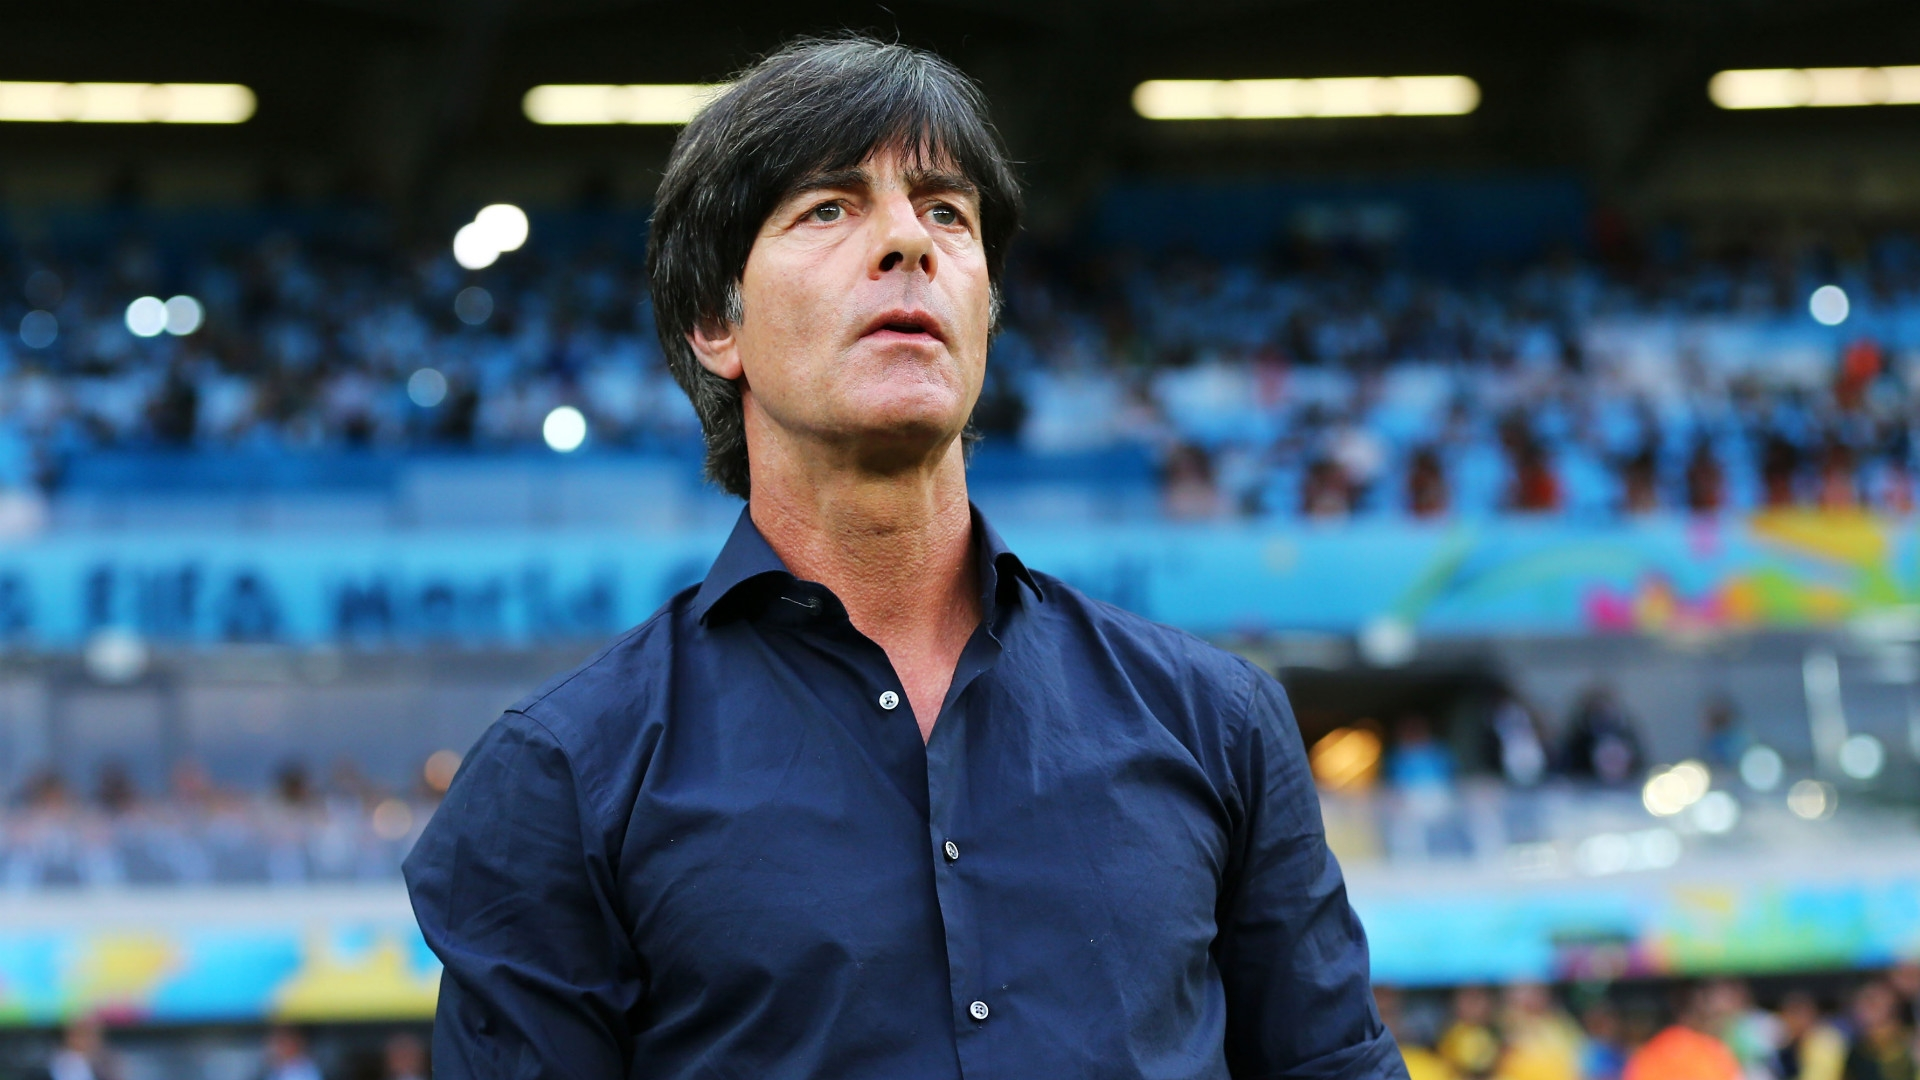 WATCH: Joachim Löw Has Been Caught Sniffing